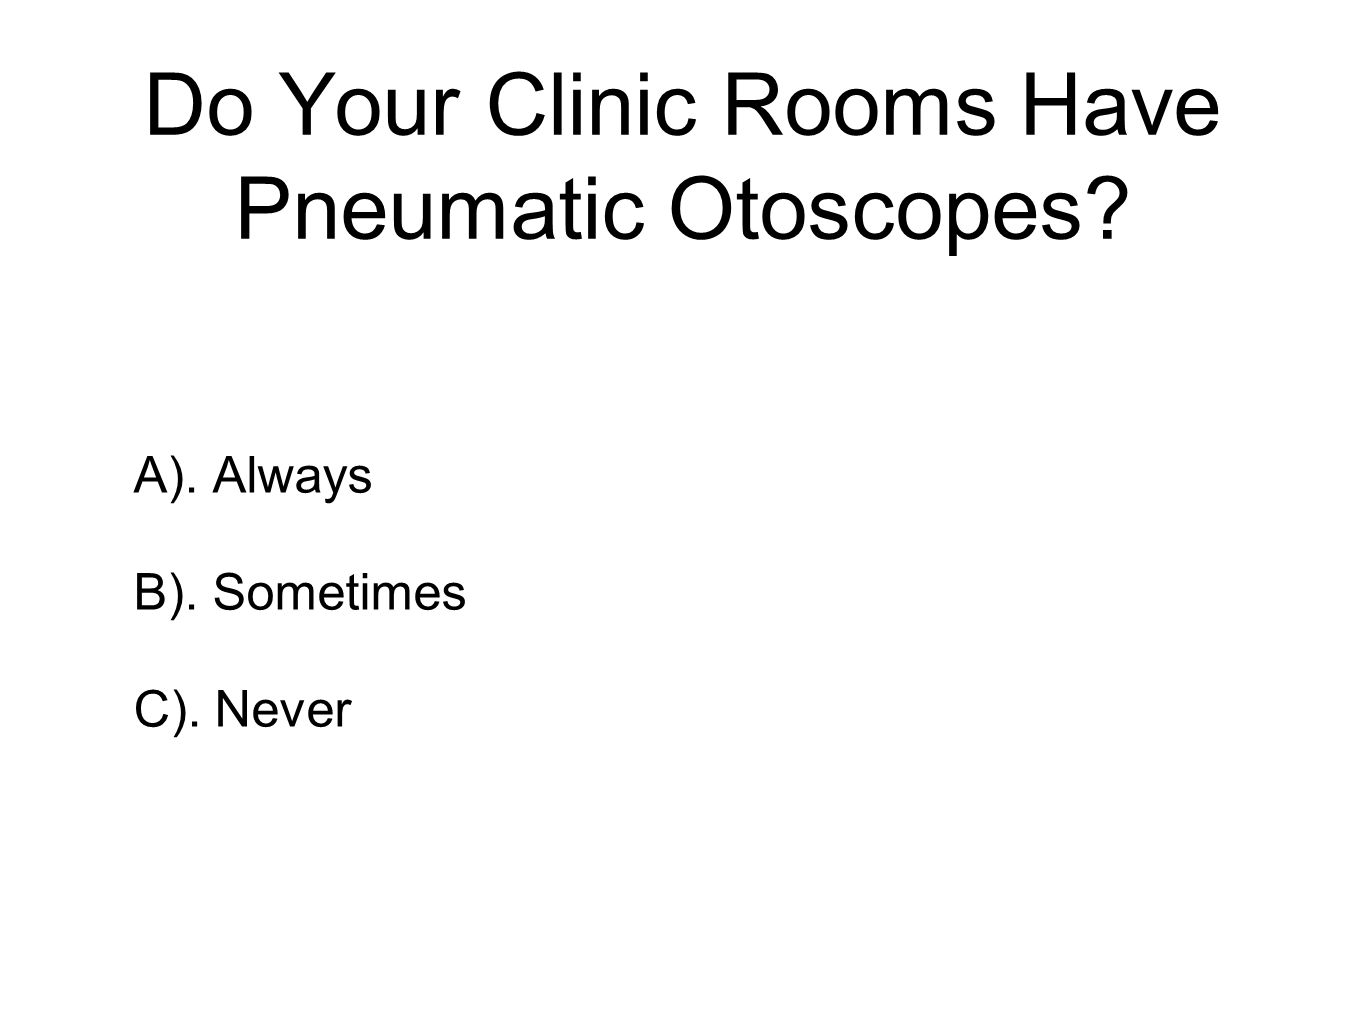 Do Your Clinic Rooms Have Pneumatic Otoscopes